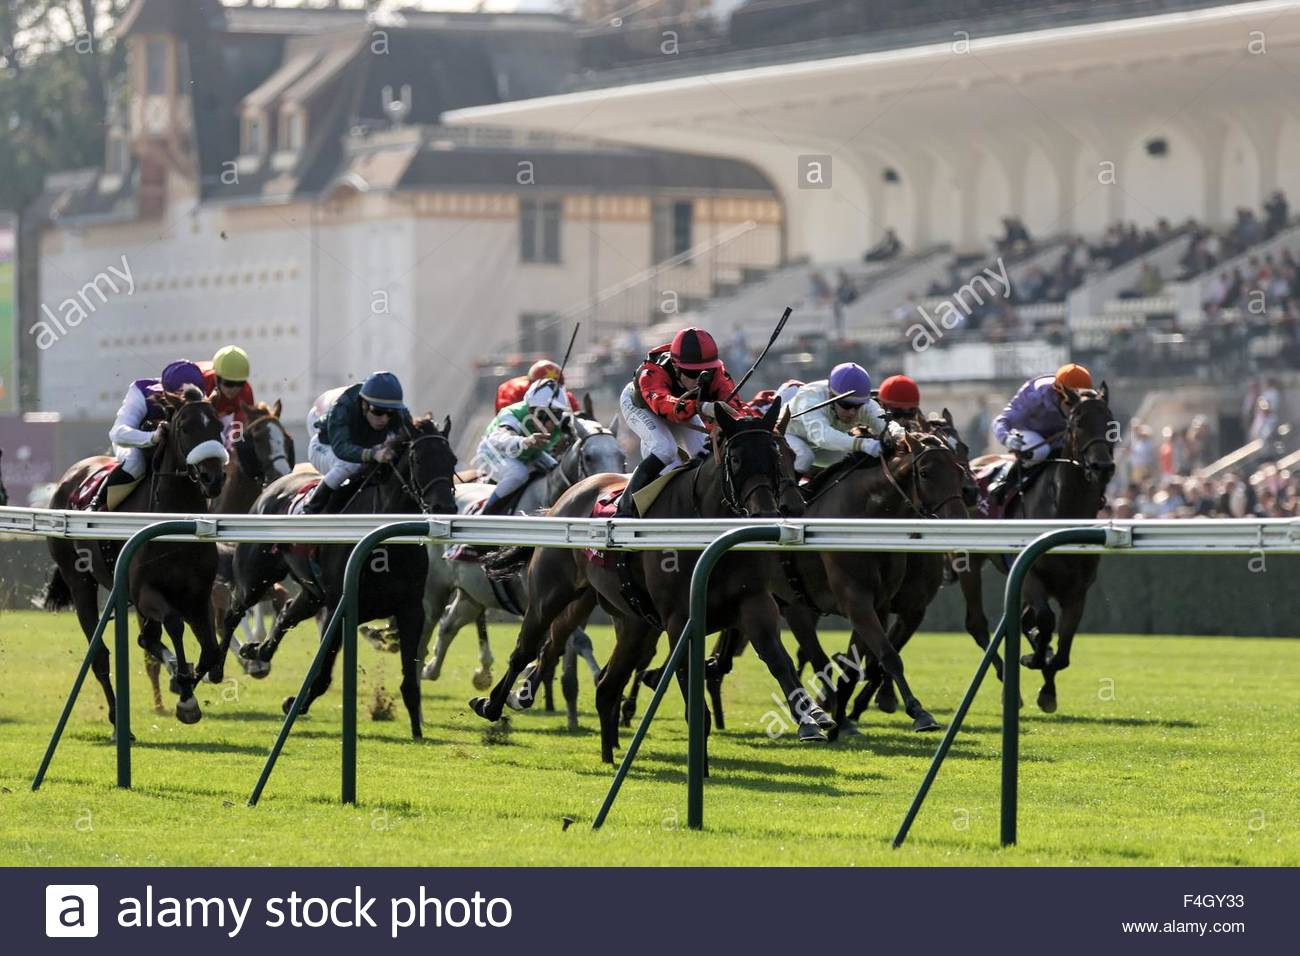 Paris, France. October 3rd, 2015. FRANCE, Paris: Jockeys get on horses during 94th Prix de l'Arc de Triomphe held Stock Photo